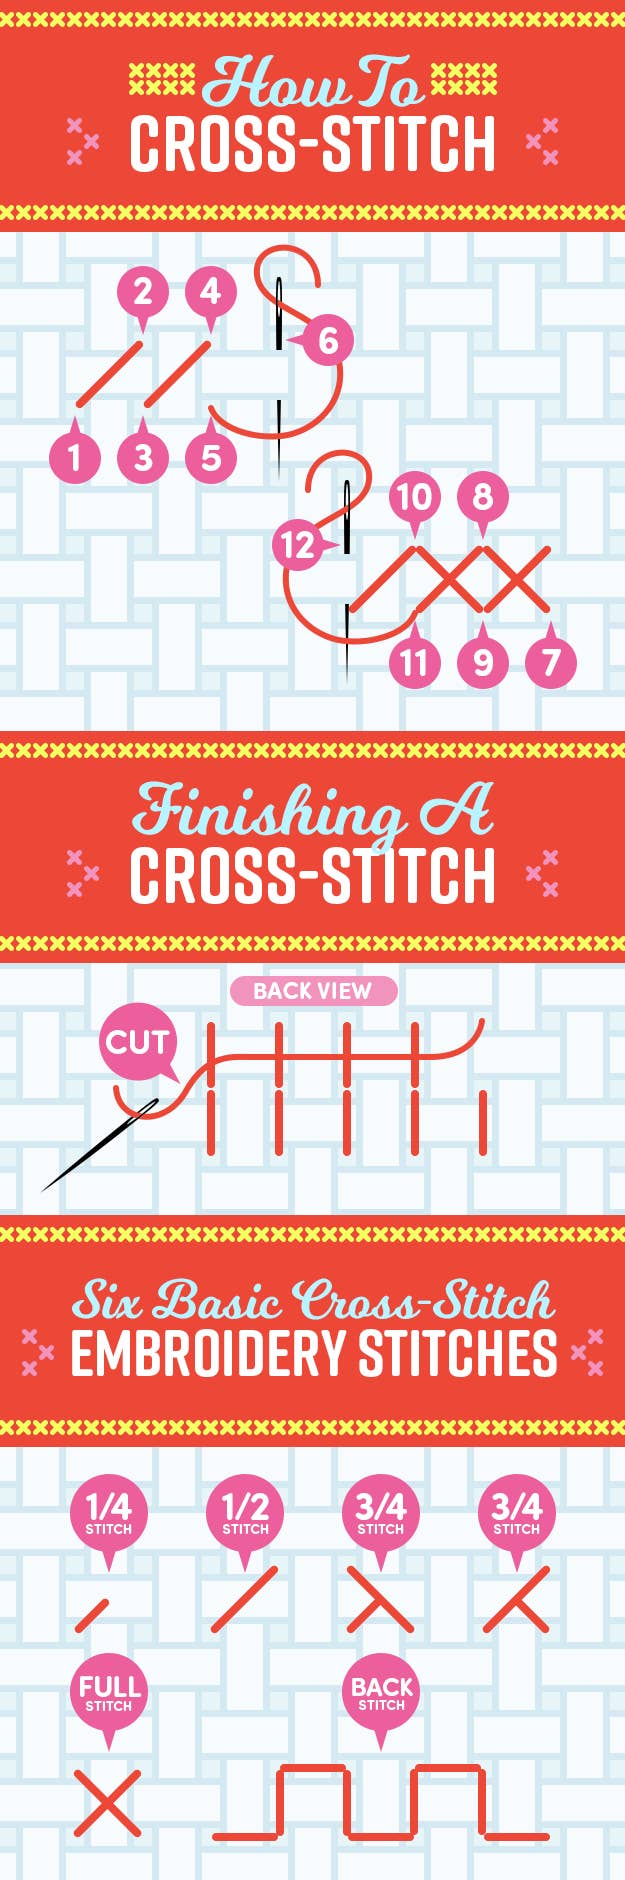 29 ridiculously helpful tips for anyone who wants to learn how to 19 learn the basics of cross stitch types geenschuldenfo Images